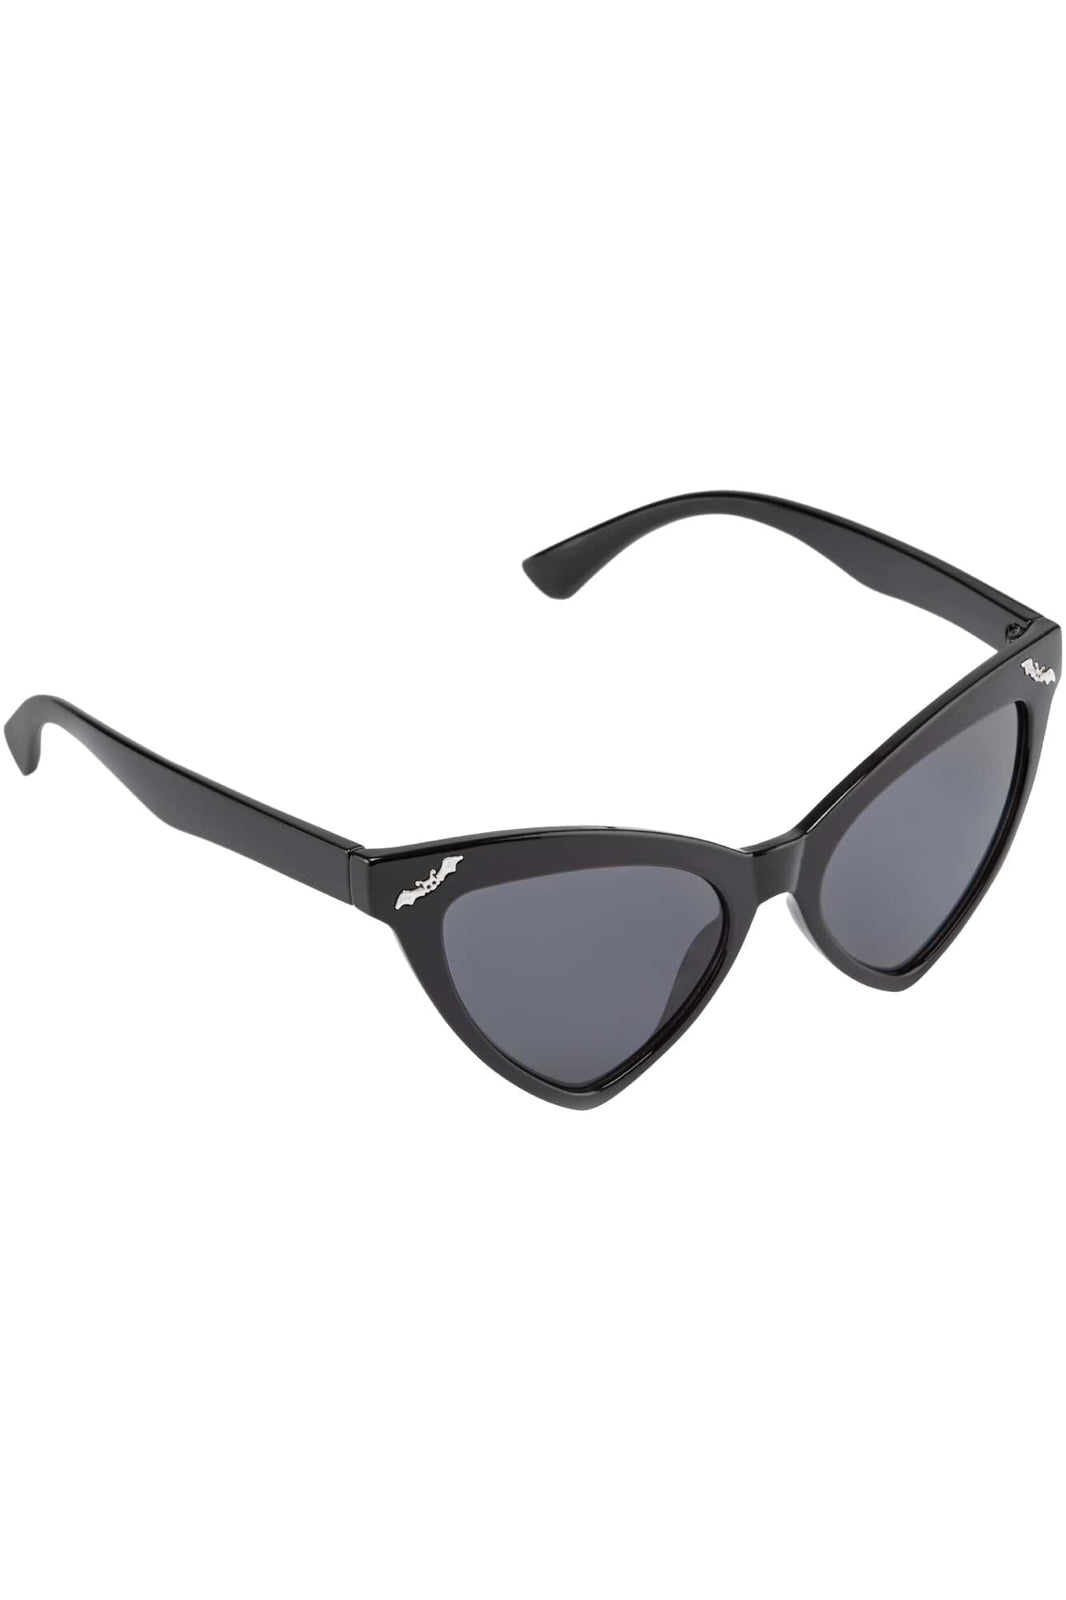 Bat An Eye Sunglasses [B]